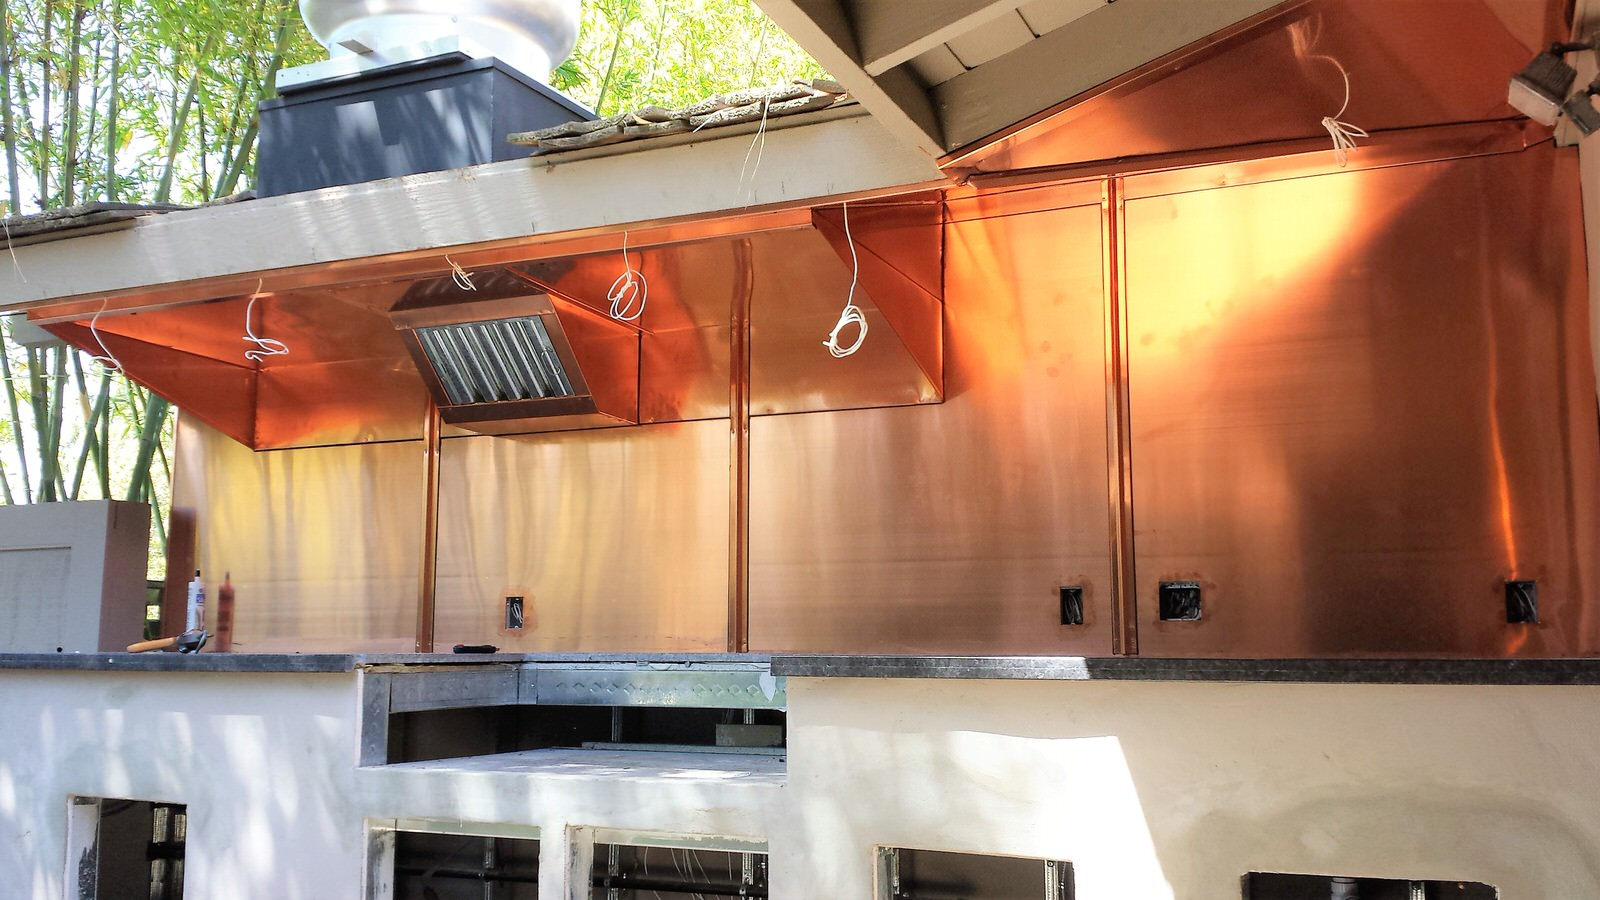 Residential Exhaust Hoods Perfection stainless 5